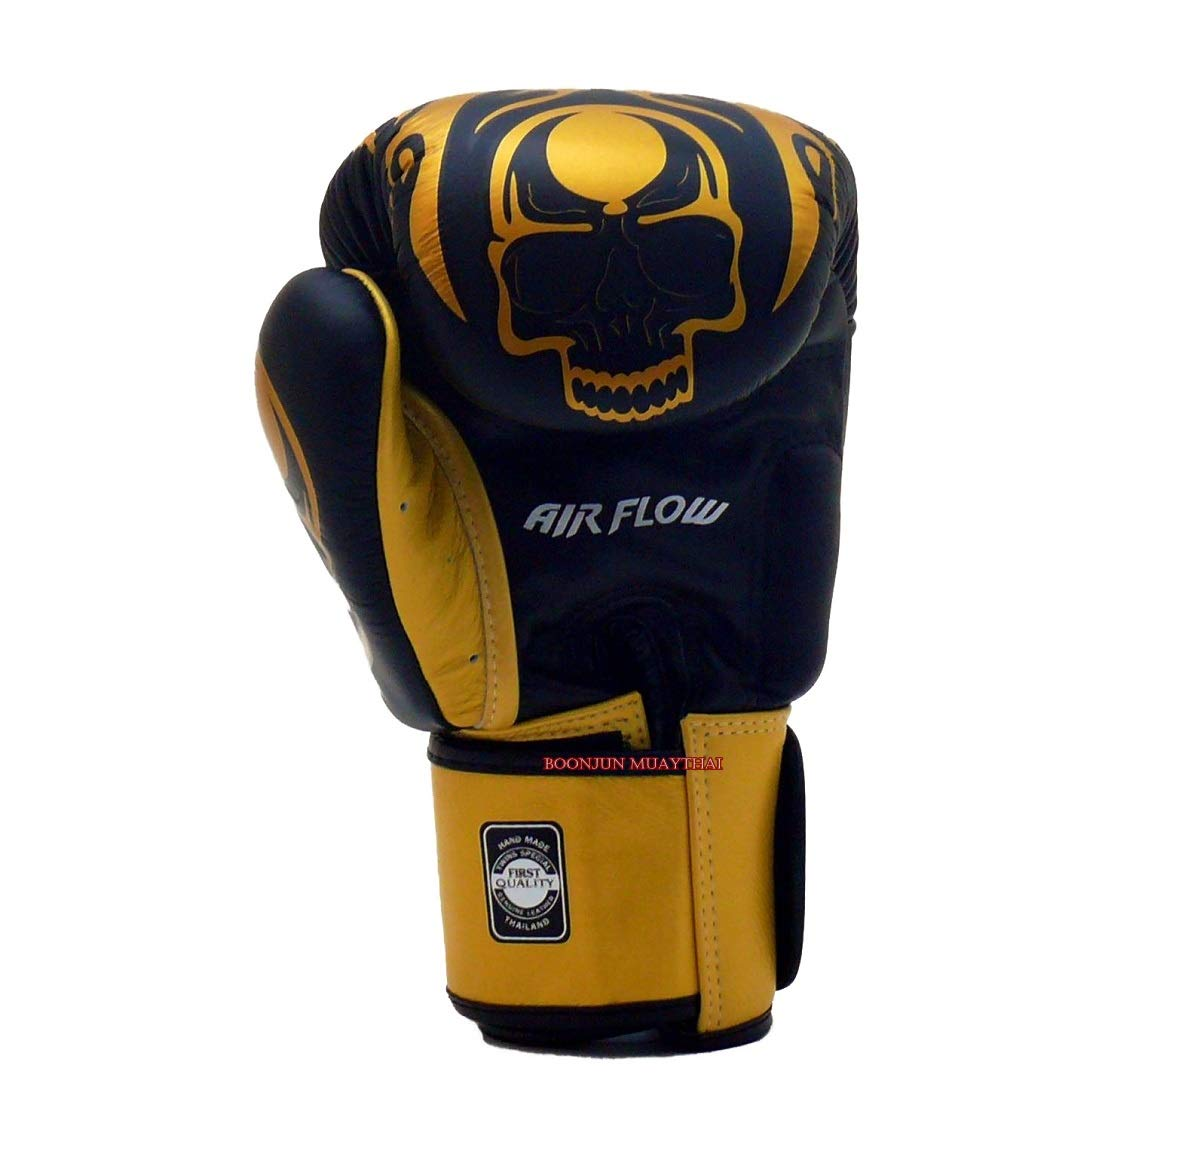 Univesal Gloves for Training or Sparring. Skull Black//Gold, 14 oz Twins Special Muay Thai Boxing Gloves BGVLA 2 Air Flow Gloves